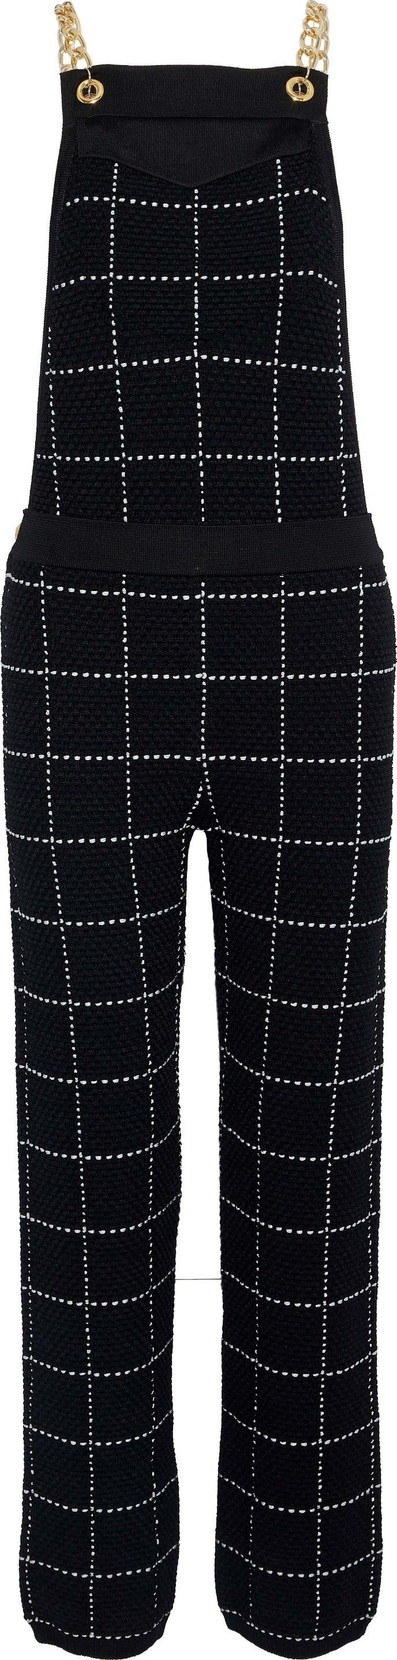 Balmain Chain-embellished checked bouclé-knit overalls